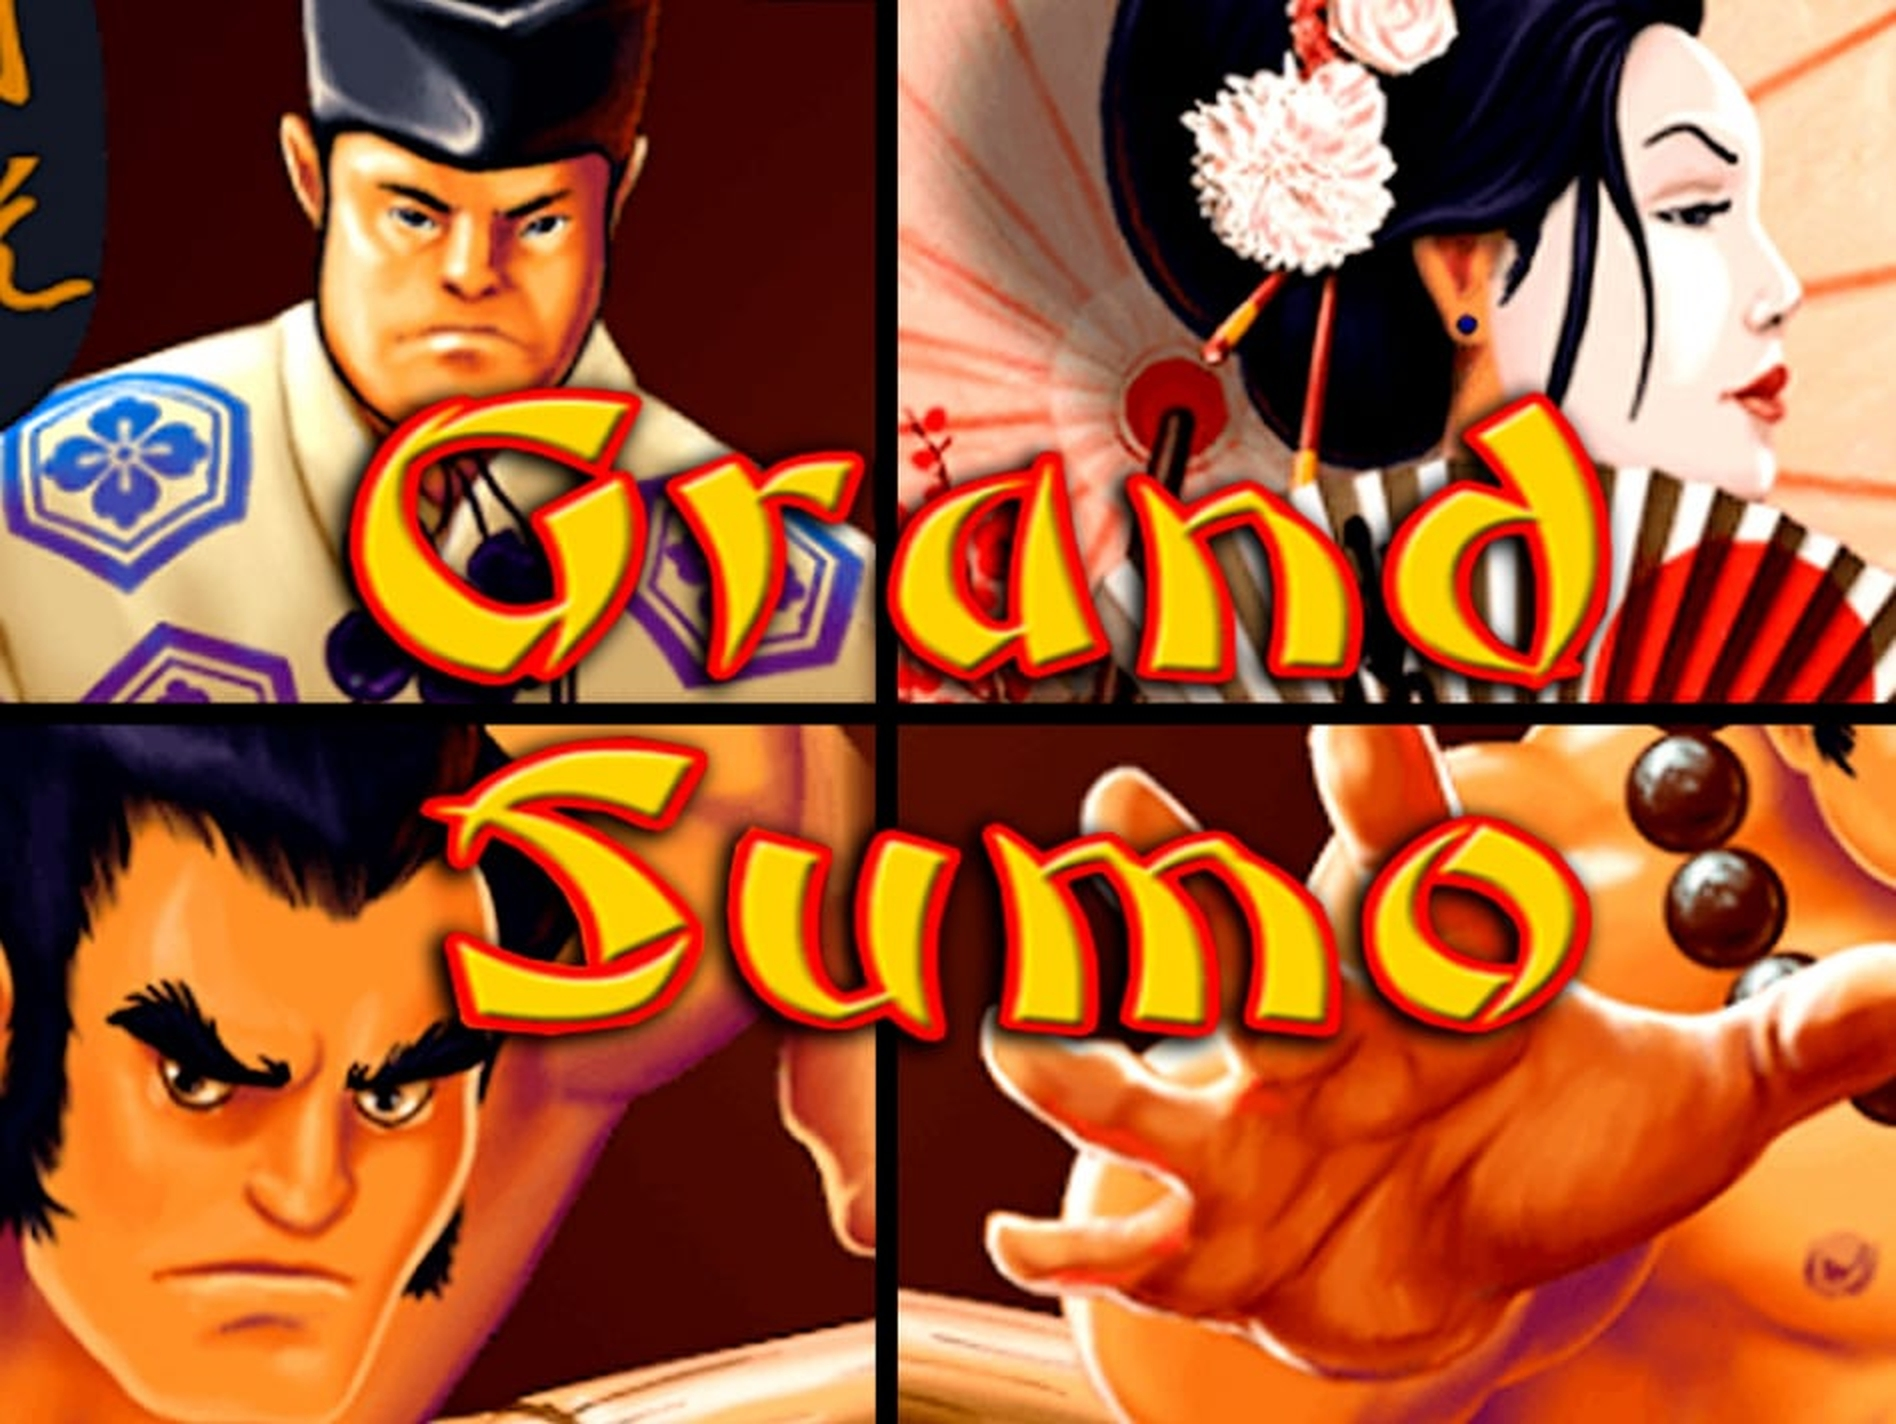 The Grand Sumo Online Slot Demo Game by Fugaso